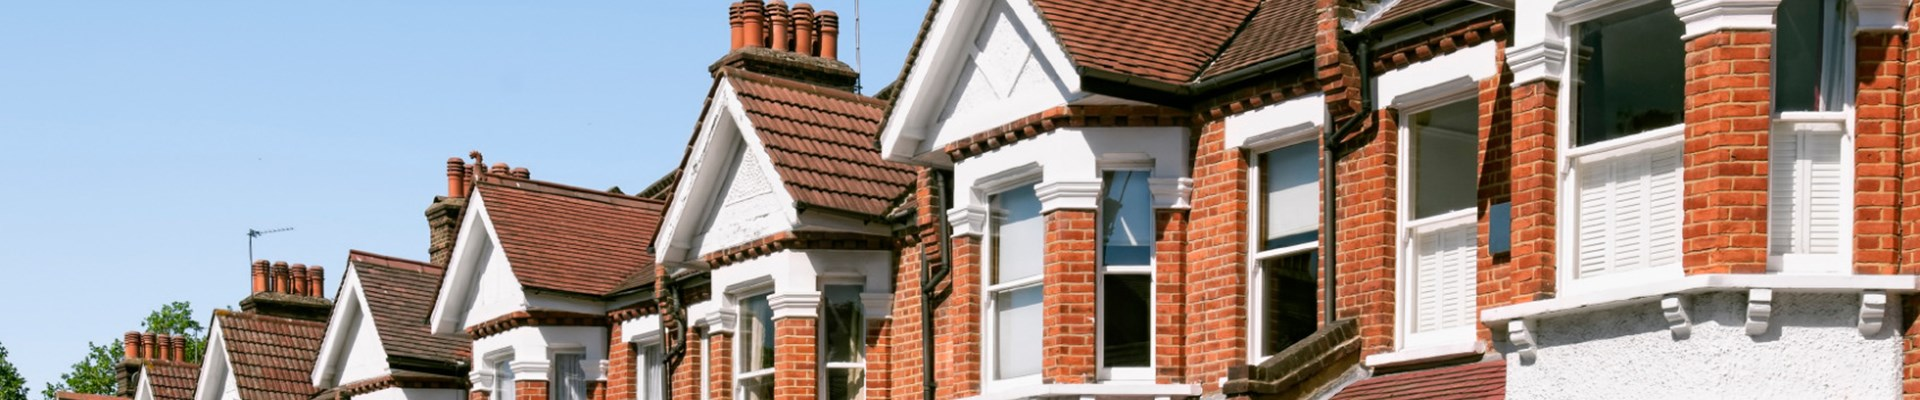 Magicman Repairs To Domestic Fixtures And Fittings